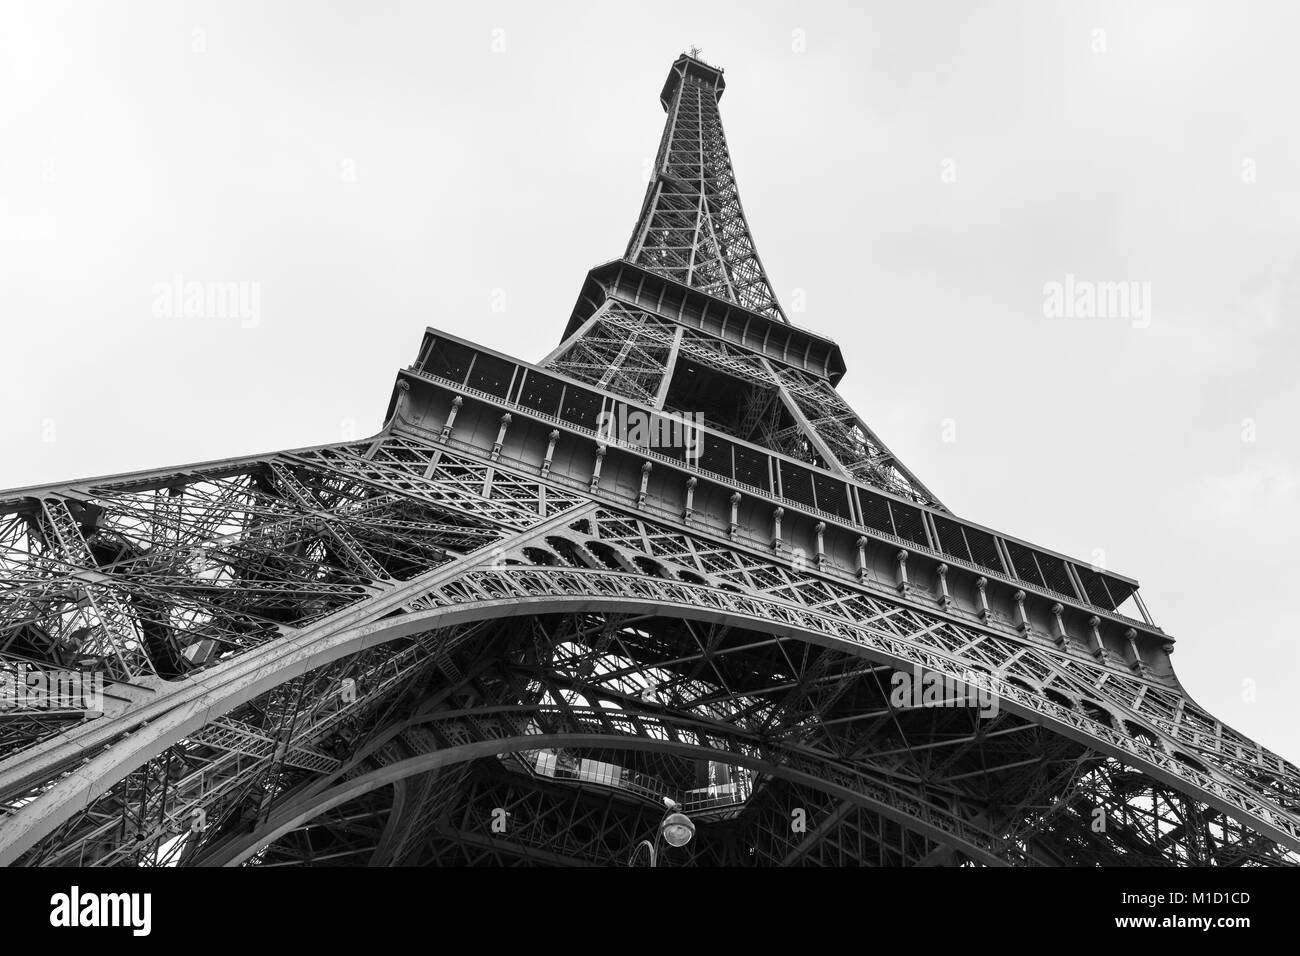 The Eiffel Tower from below, looking up, Paris, France - Stock Image